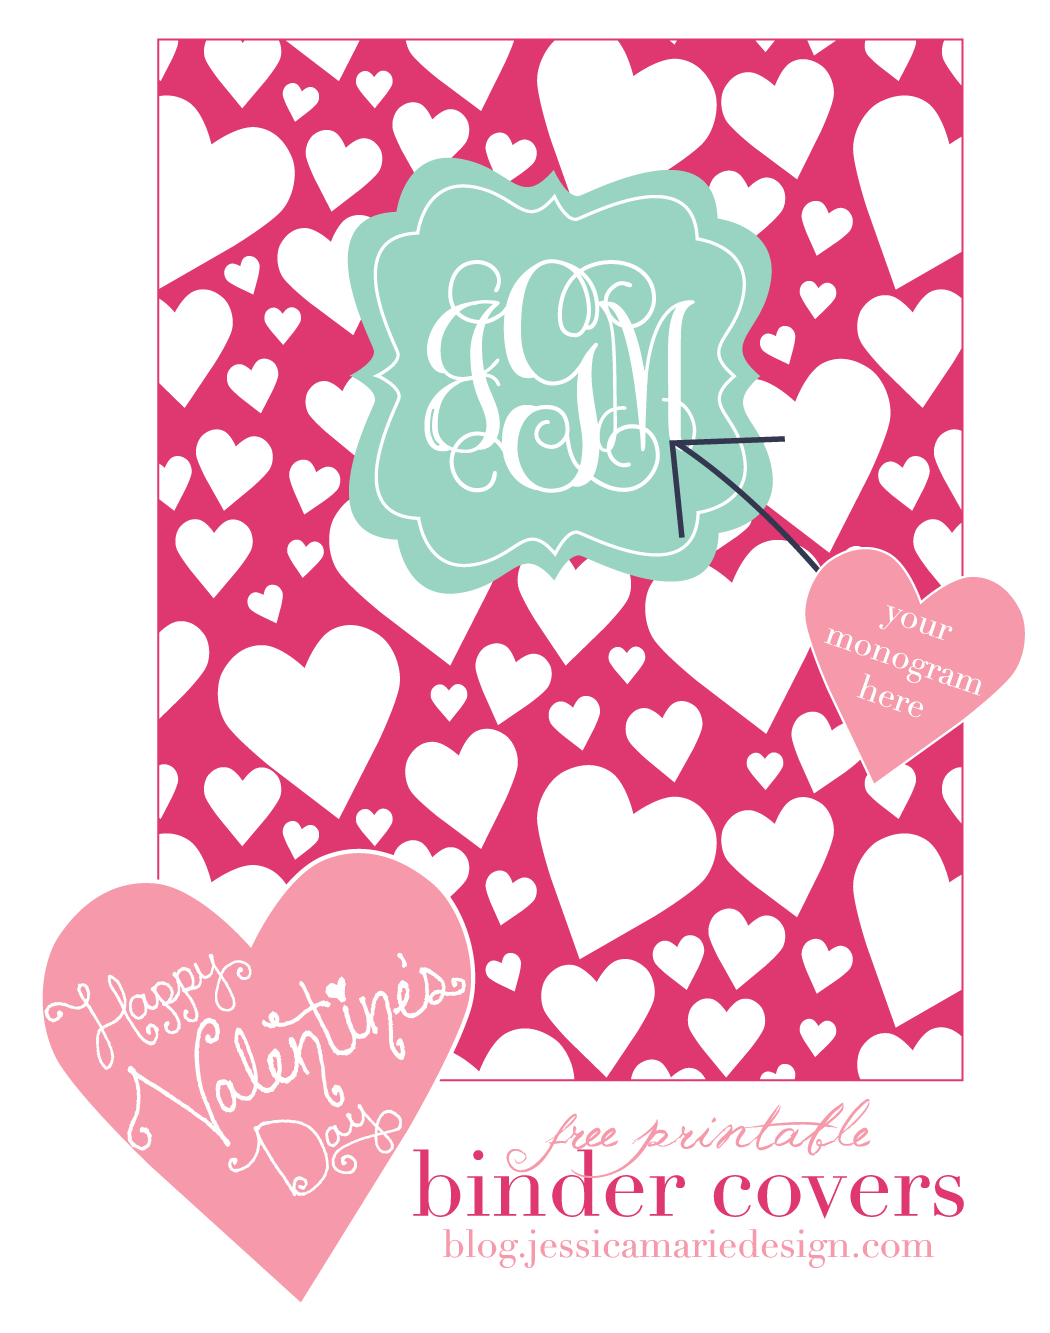 Jessica Marie Design Blog Free Printable Binder Covers